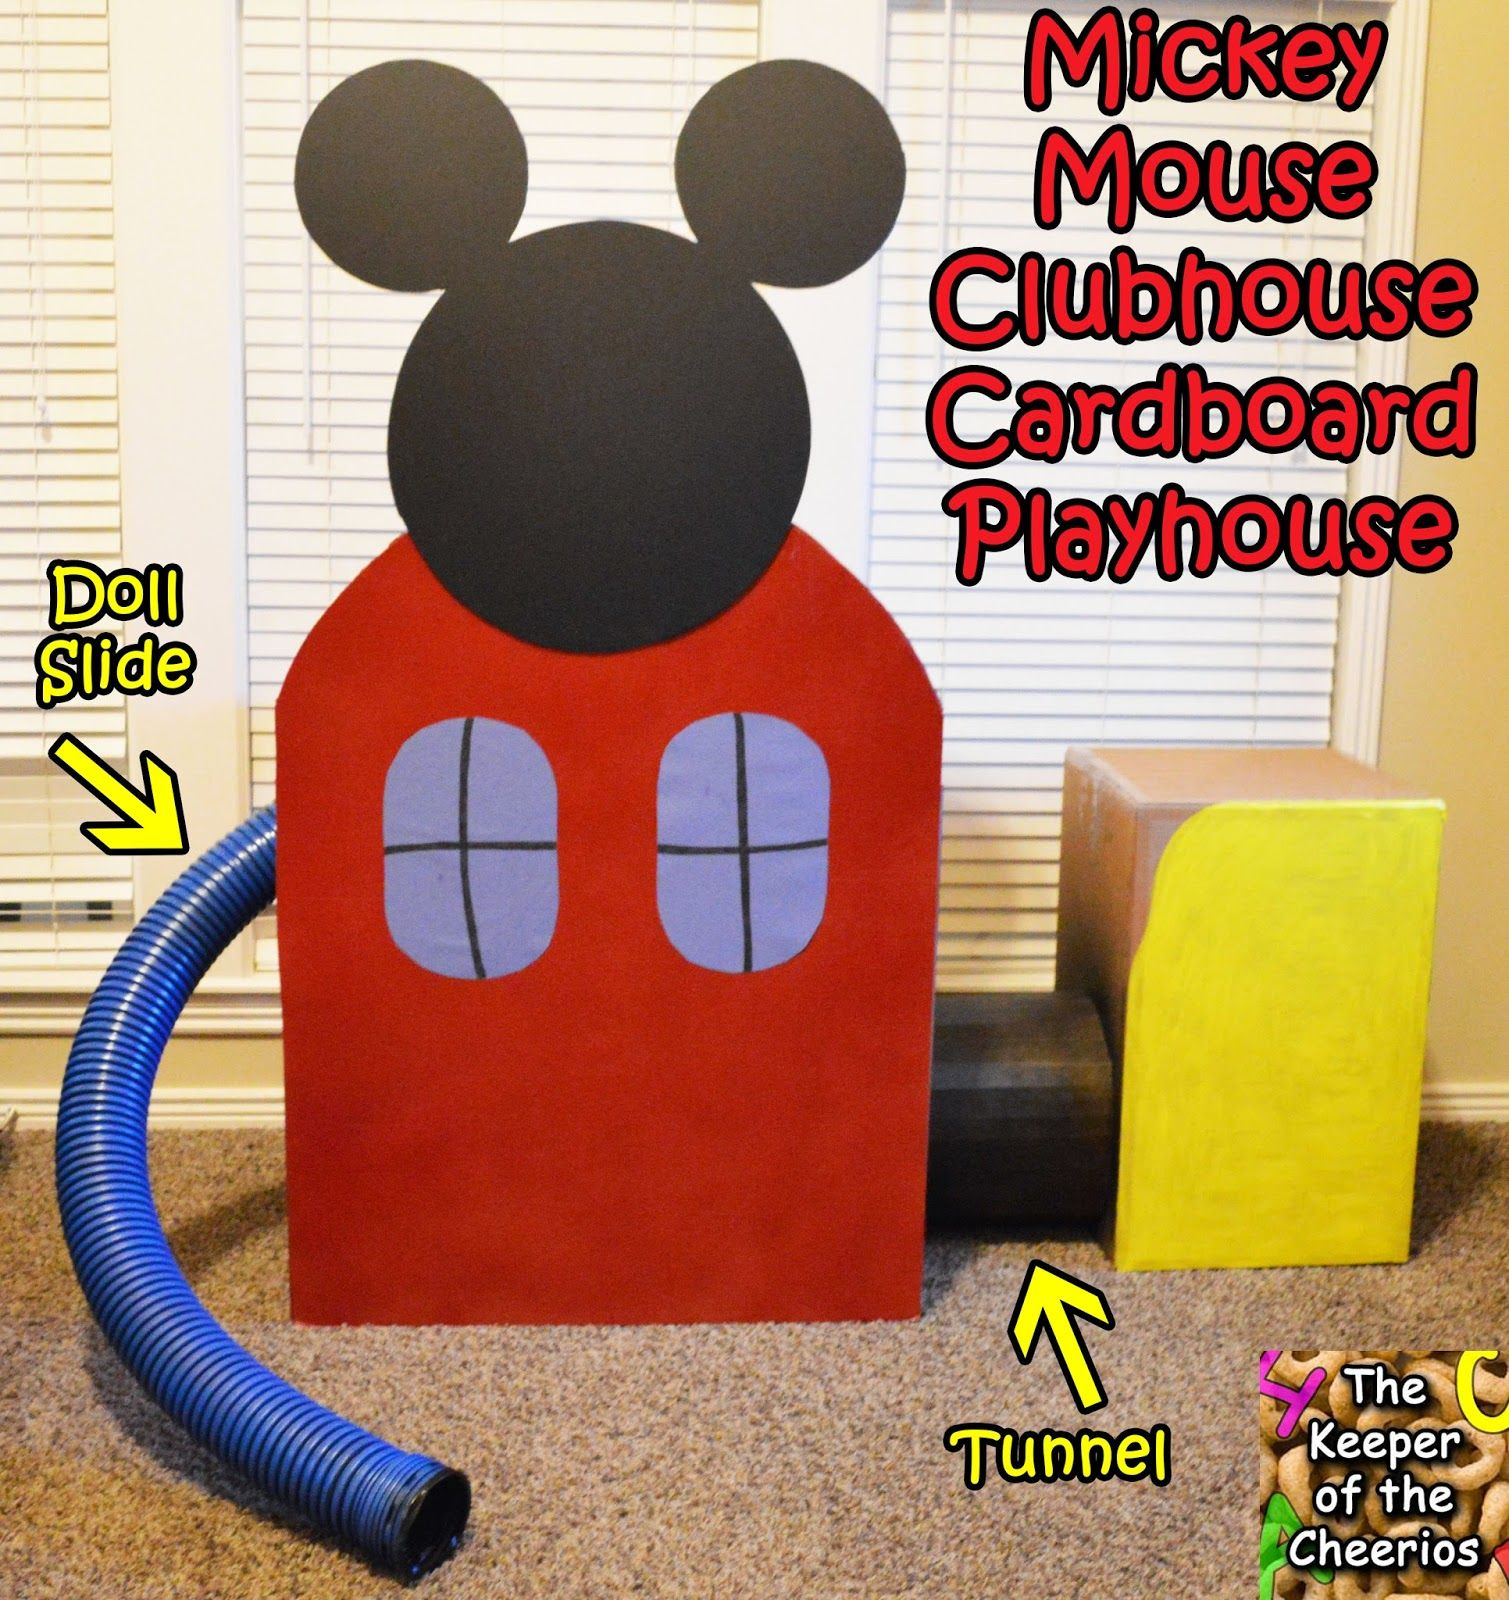 Mickey Mouse Clubhouse Cardboard Playhouse